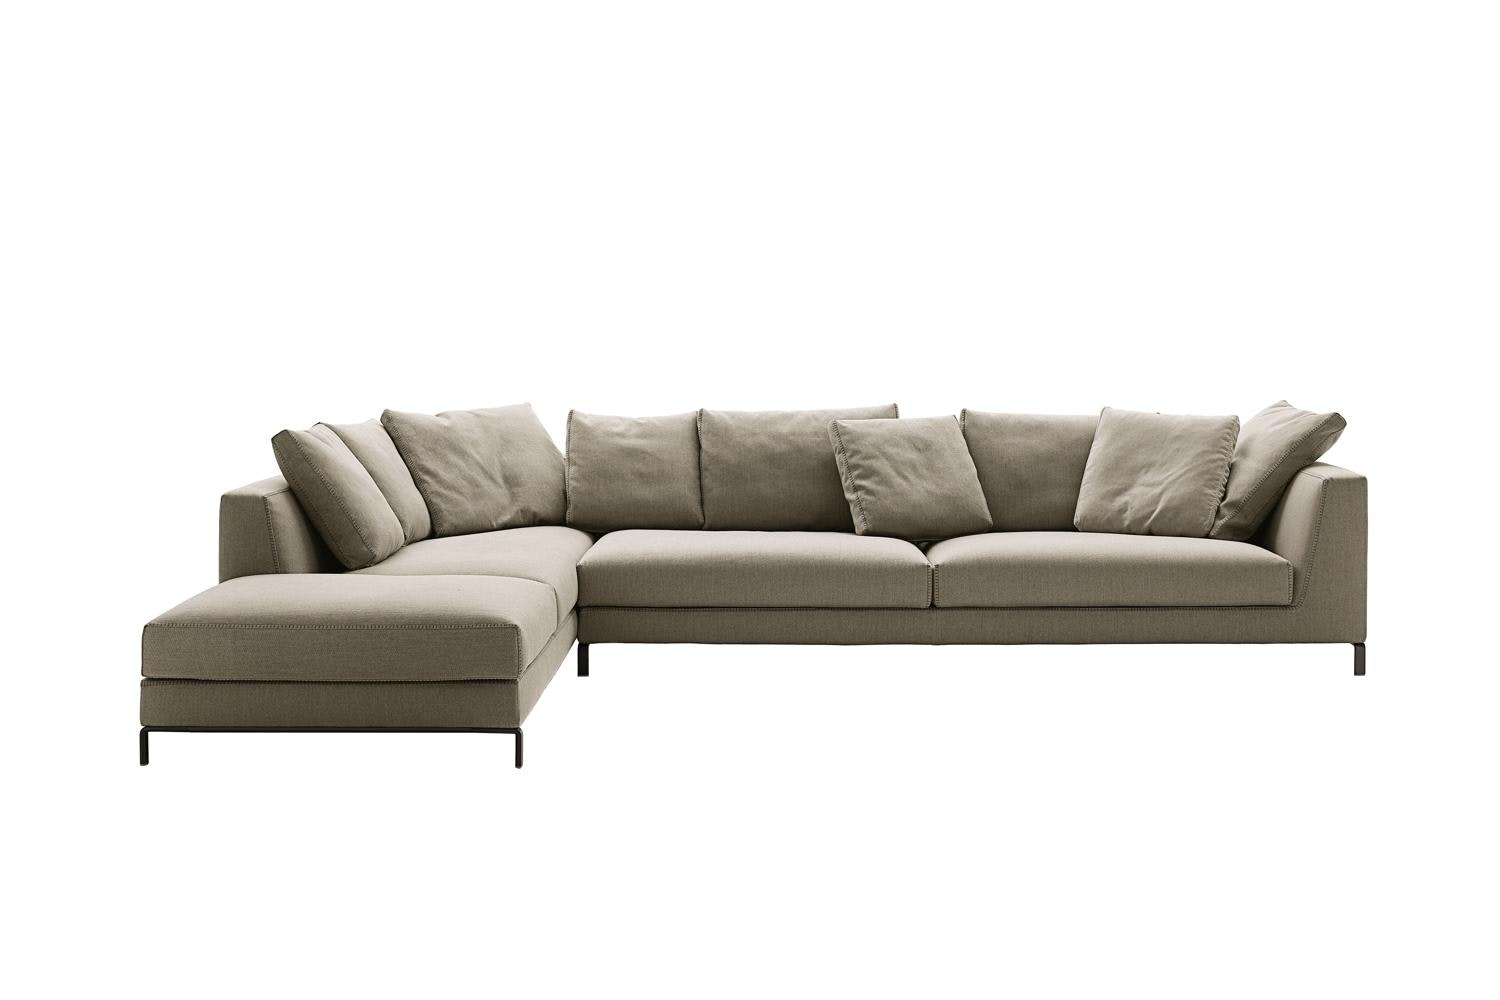 Ray Sofa with Left Chaise in Fabric by Antonio Citterio for B&B Italia